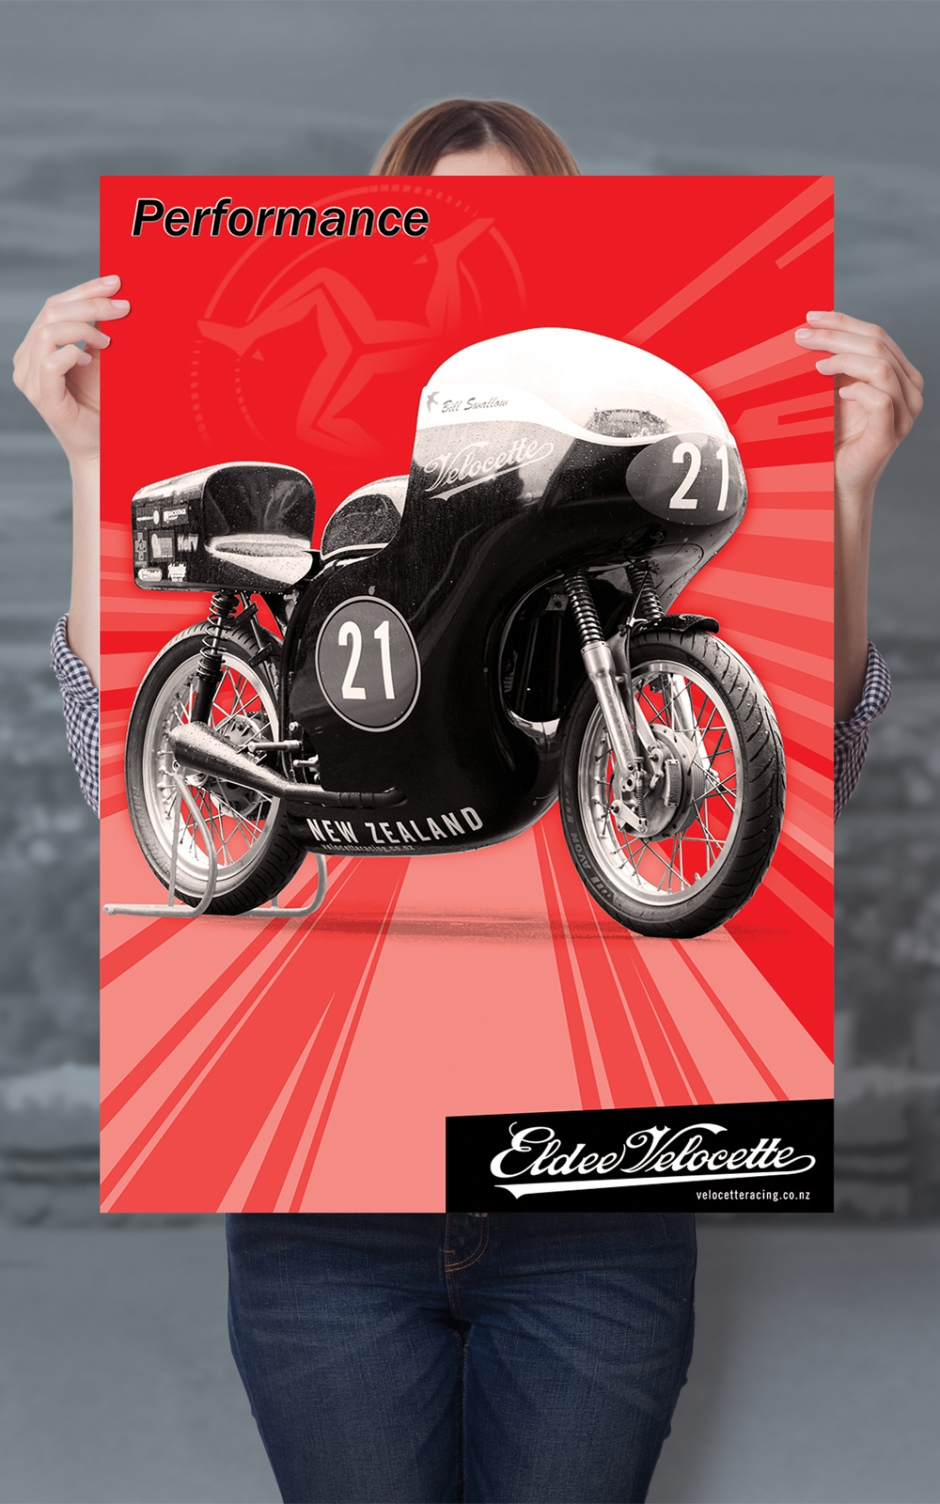 Eldee Velocette, front three-quarter, red, poster, A2, Performance, Portrait, mock-up